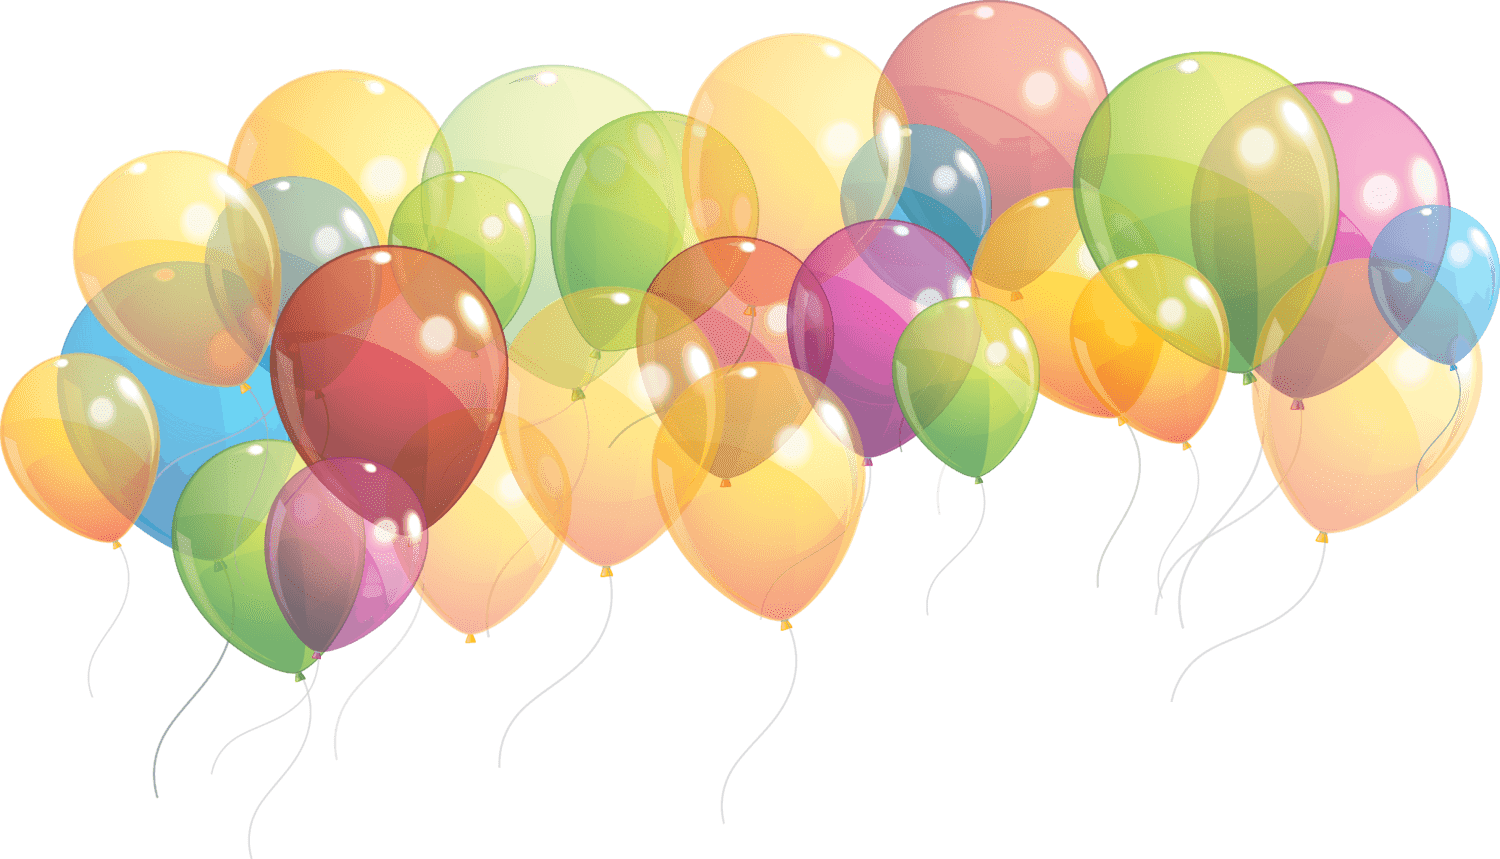 Group Of Balloons Taking Of transparent PNG.